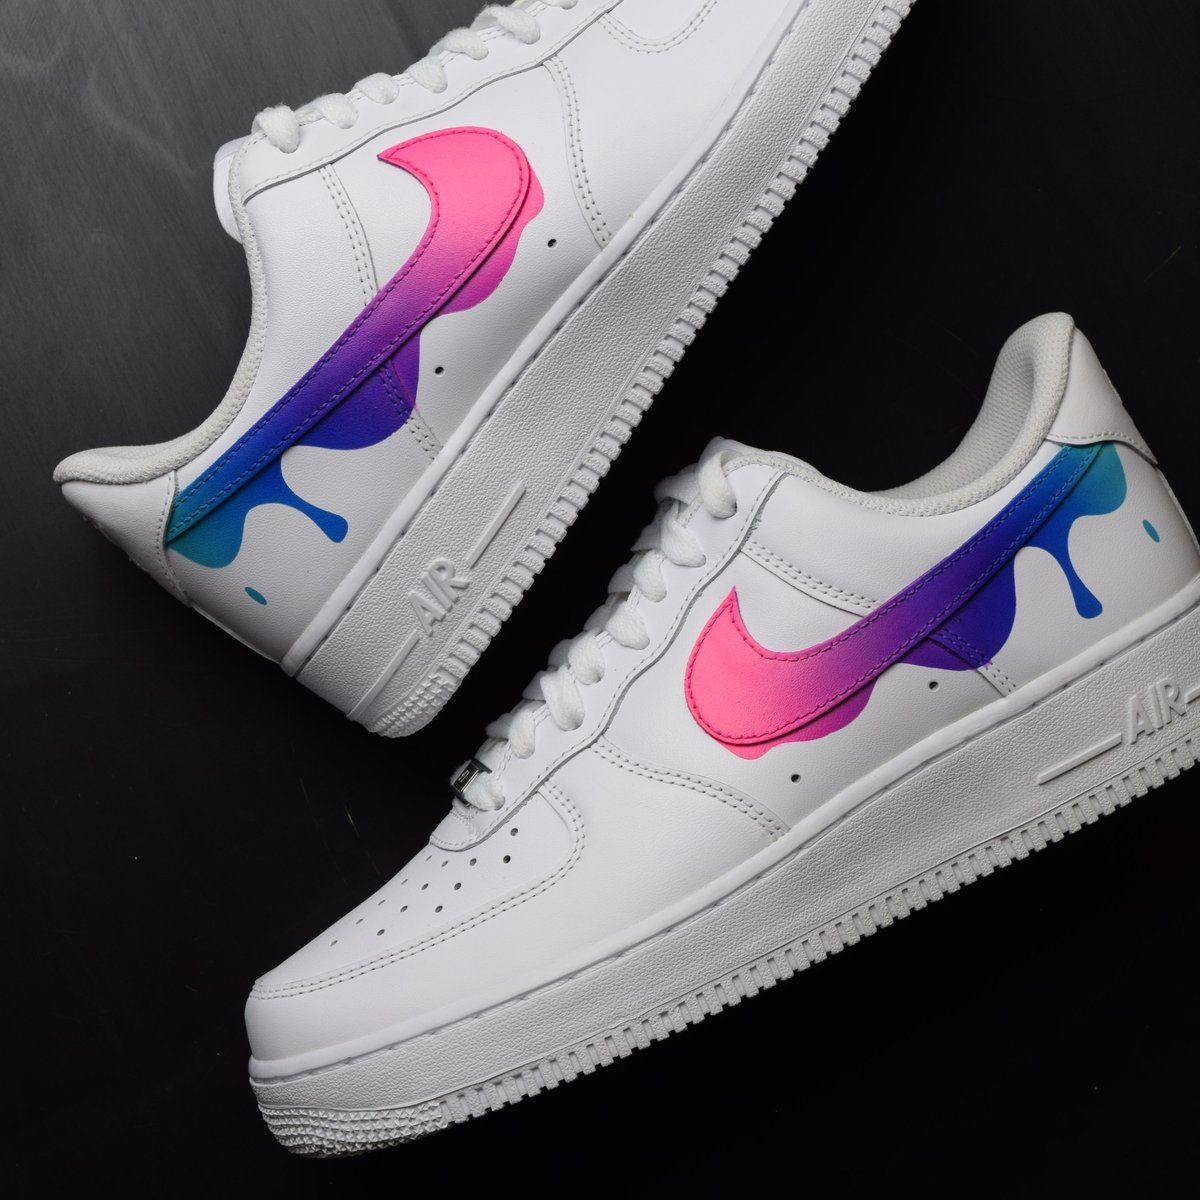 Nike Air Force 1 Low Canvas WhiteBlack | Nike | Sole Collector